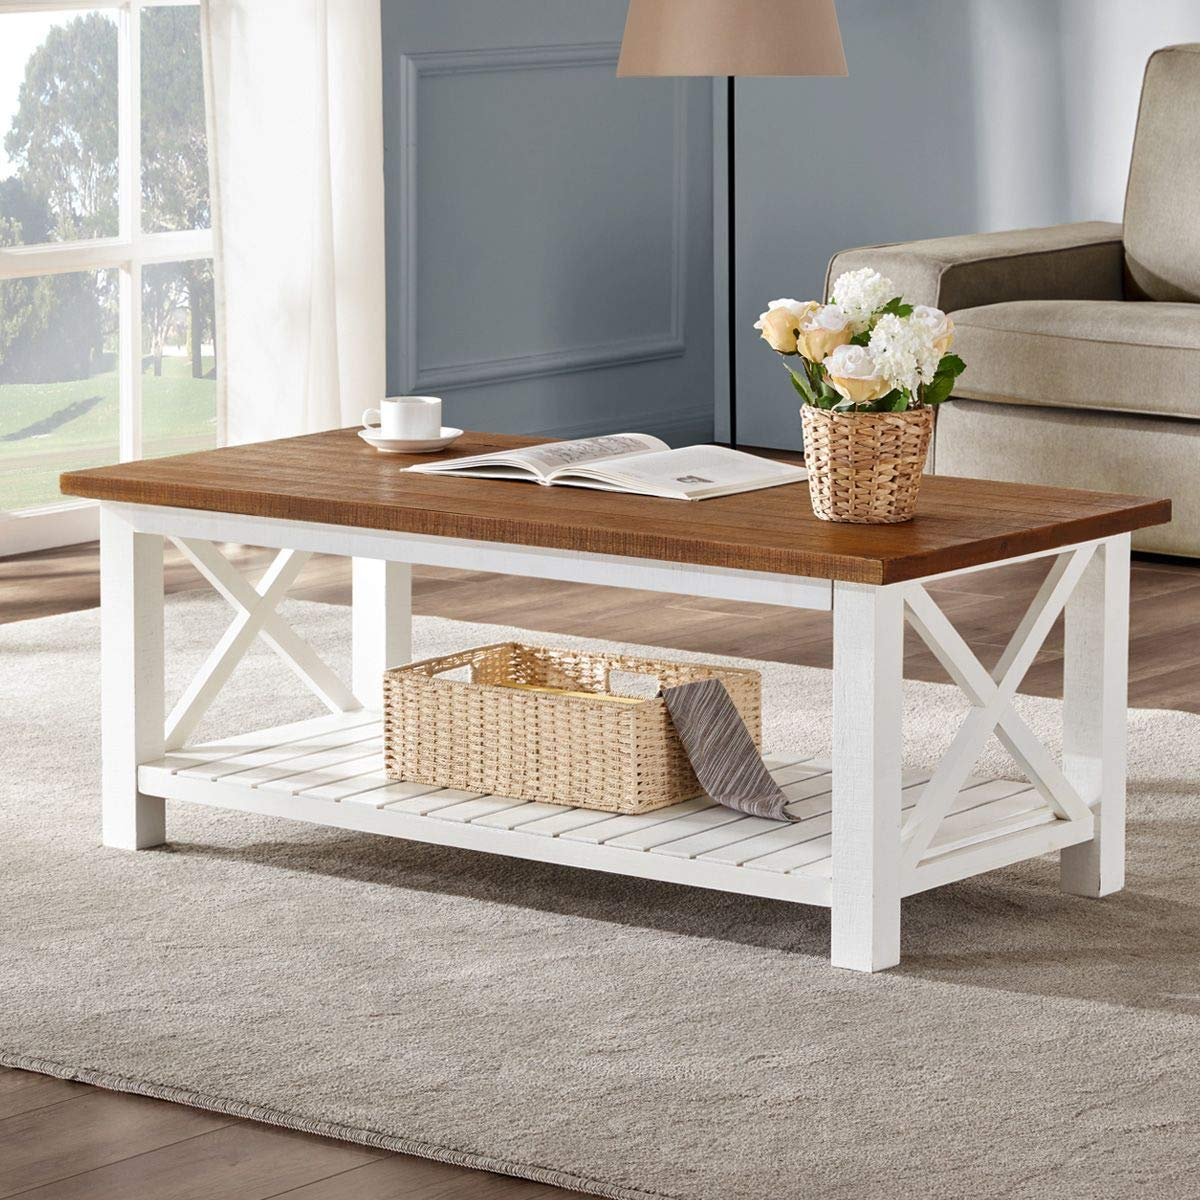 Beau Amazon.com: FurniChoi Farmhouse Coffee Table, Wood Rustic Vintage Cocktail  Table For Living Room With Shelf, 47 White And Brown: Kitchen U0026 Dining